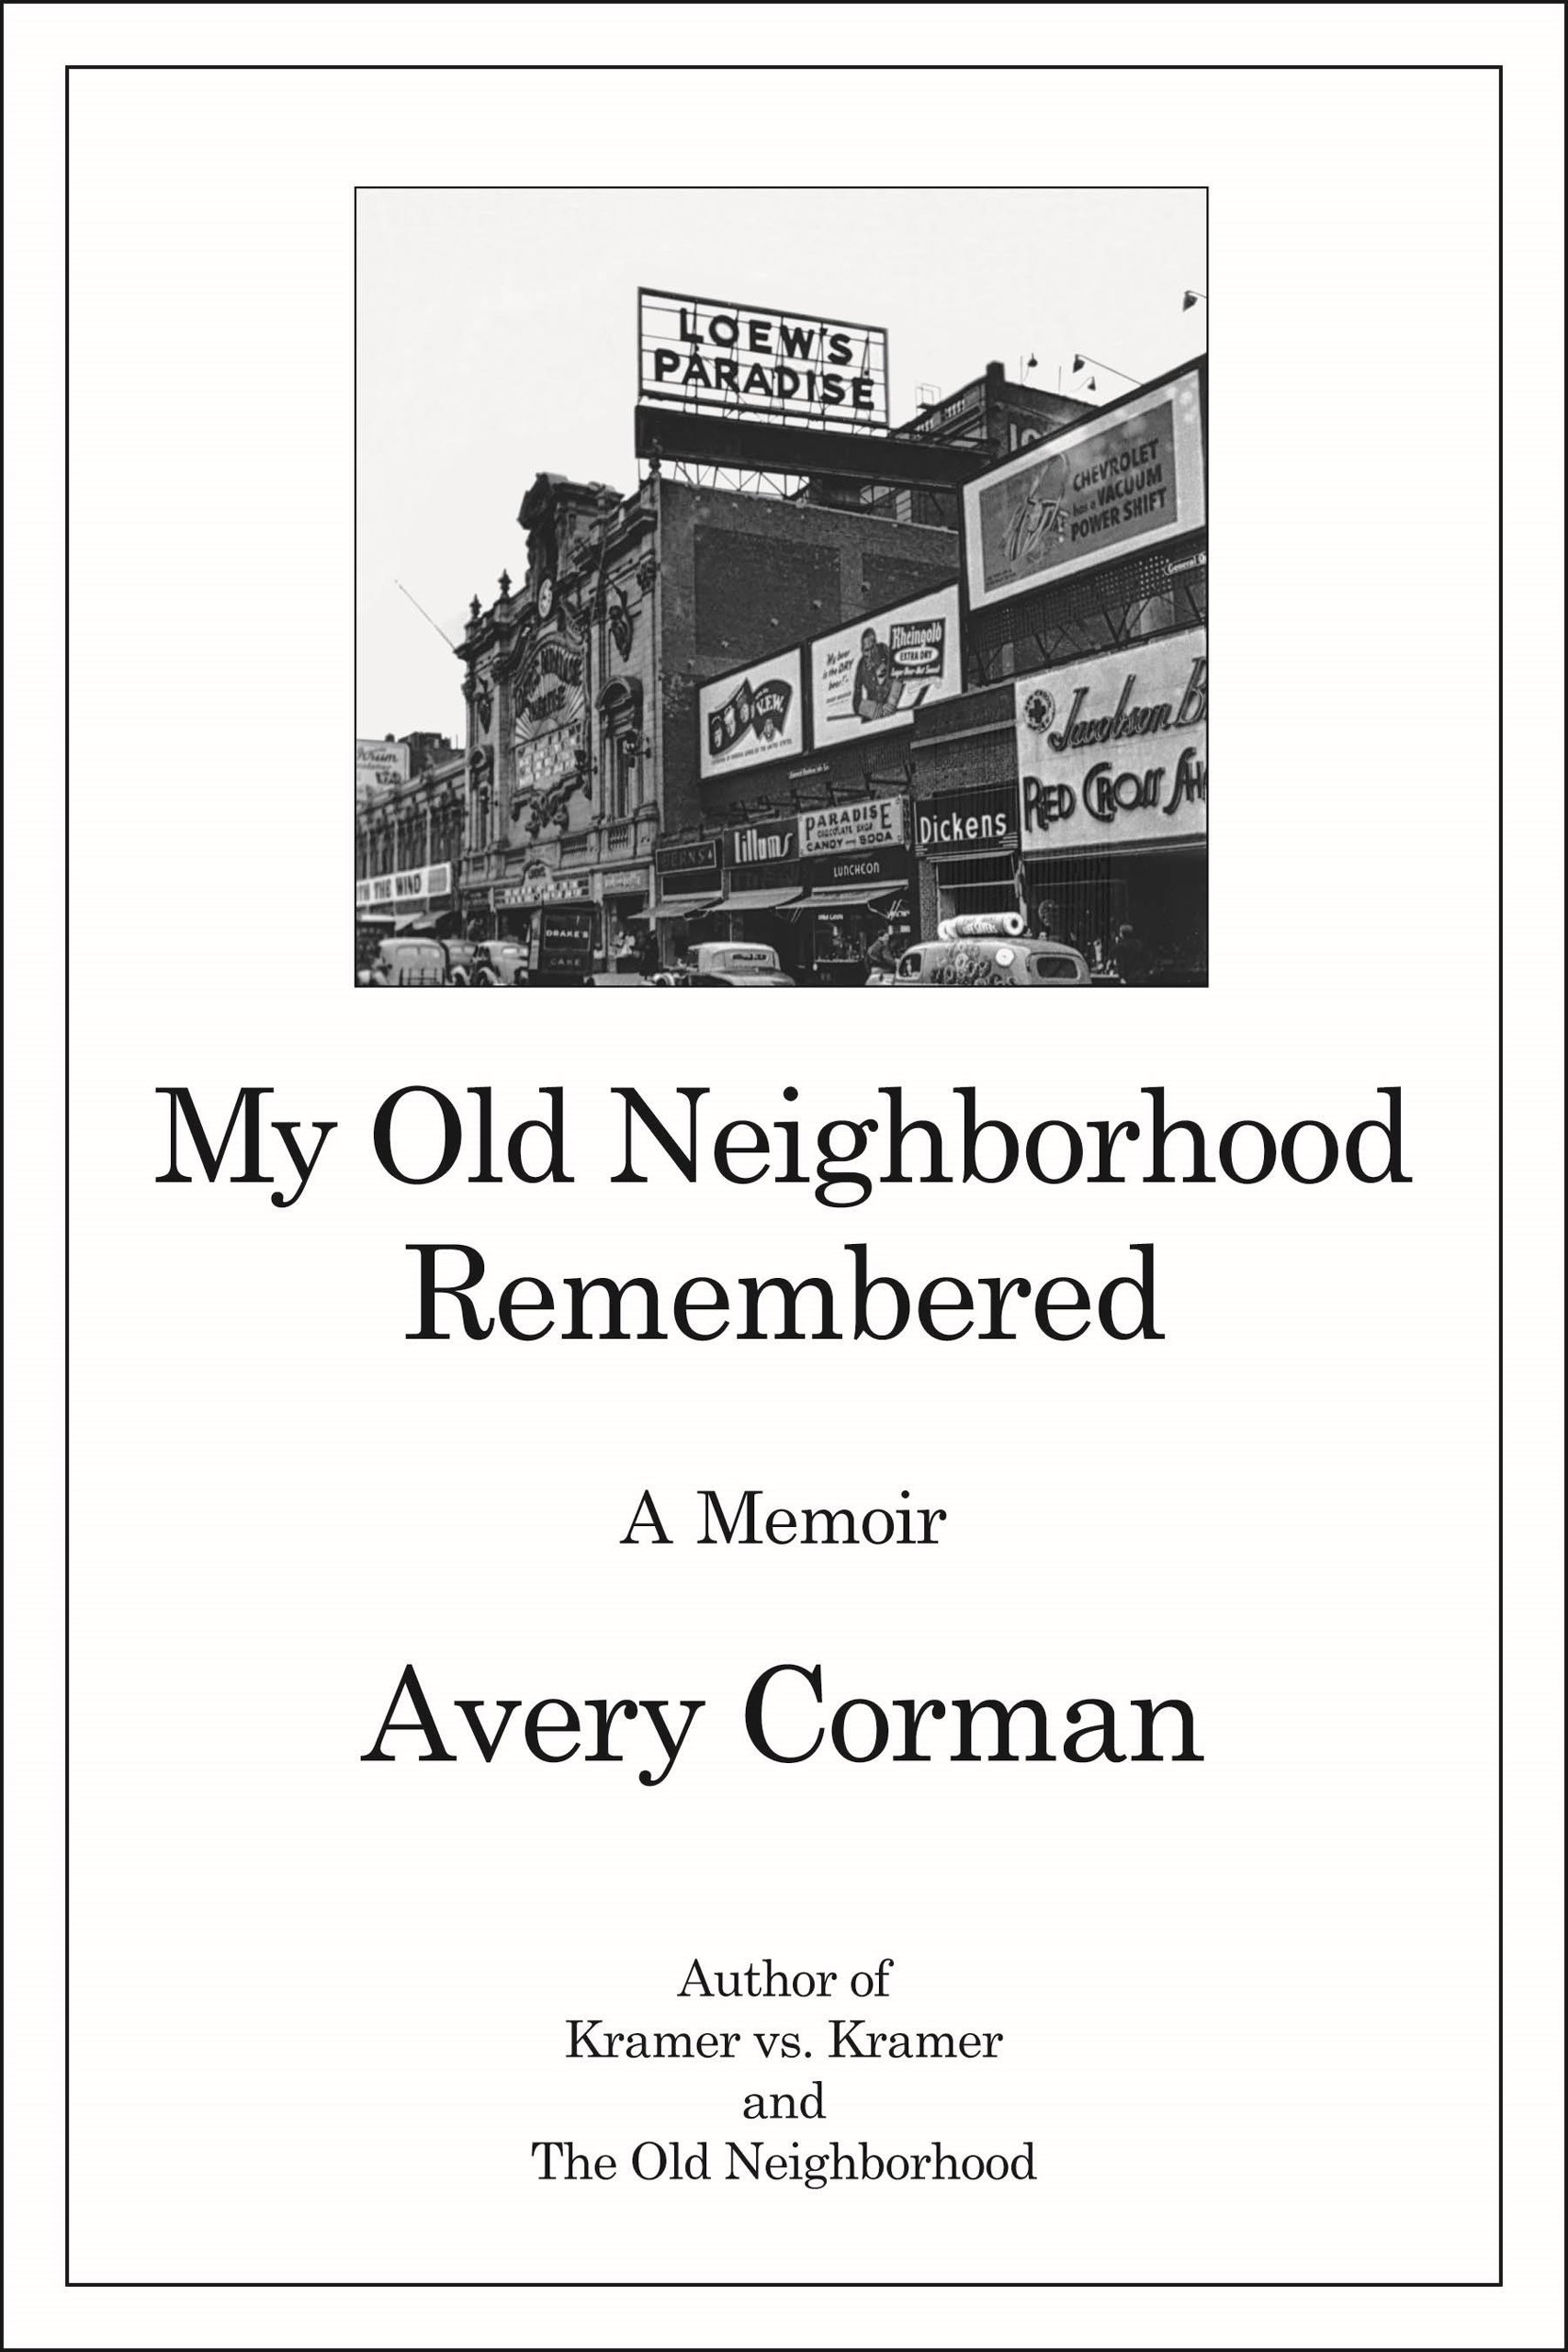 """An Interview With Avery Corman """"My Old Neighborhood Remembered A Memoir"""""""